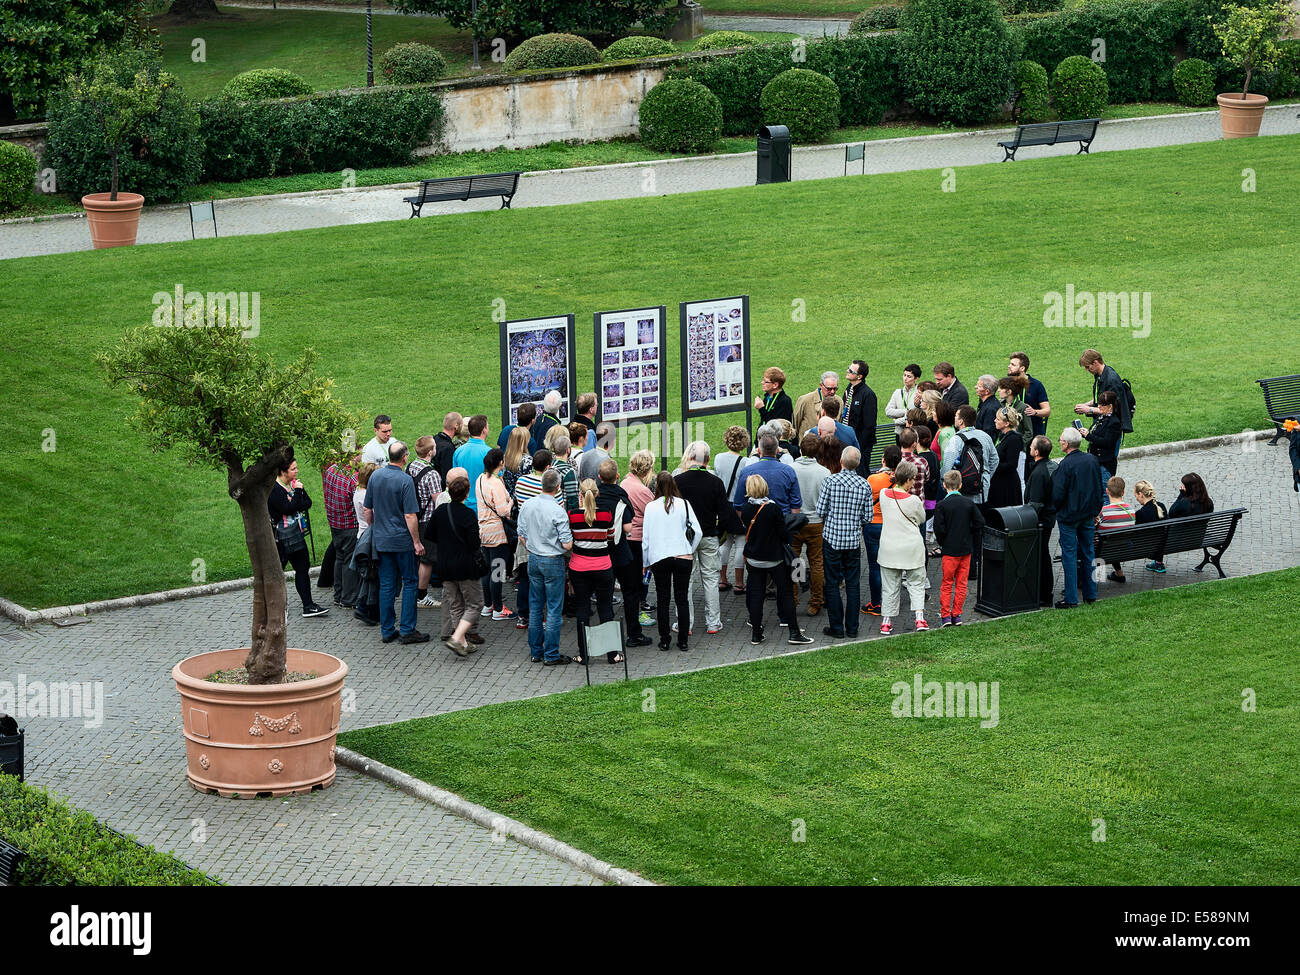 Group of tourists on guded tour of the Vatican grounds and Vatican Museums, Vatican City, Rome, Italy - Stock Image